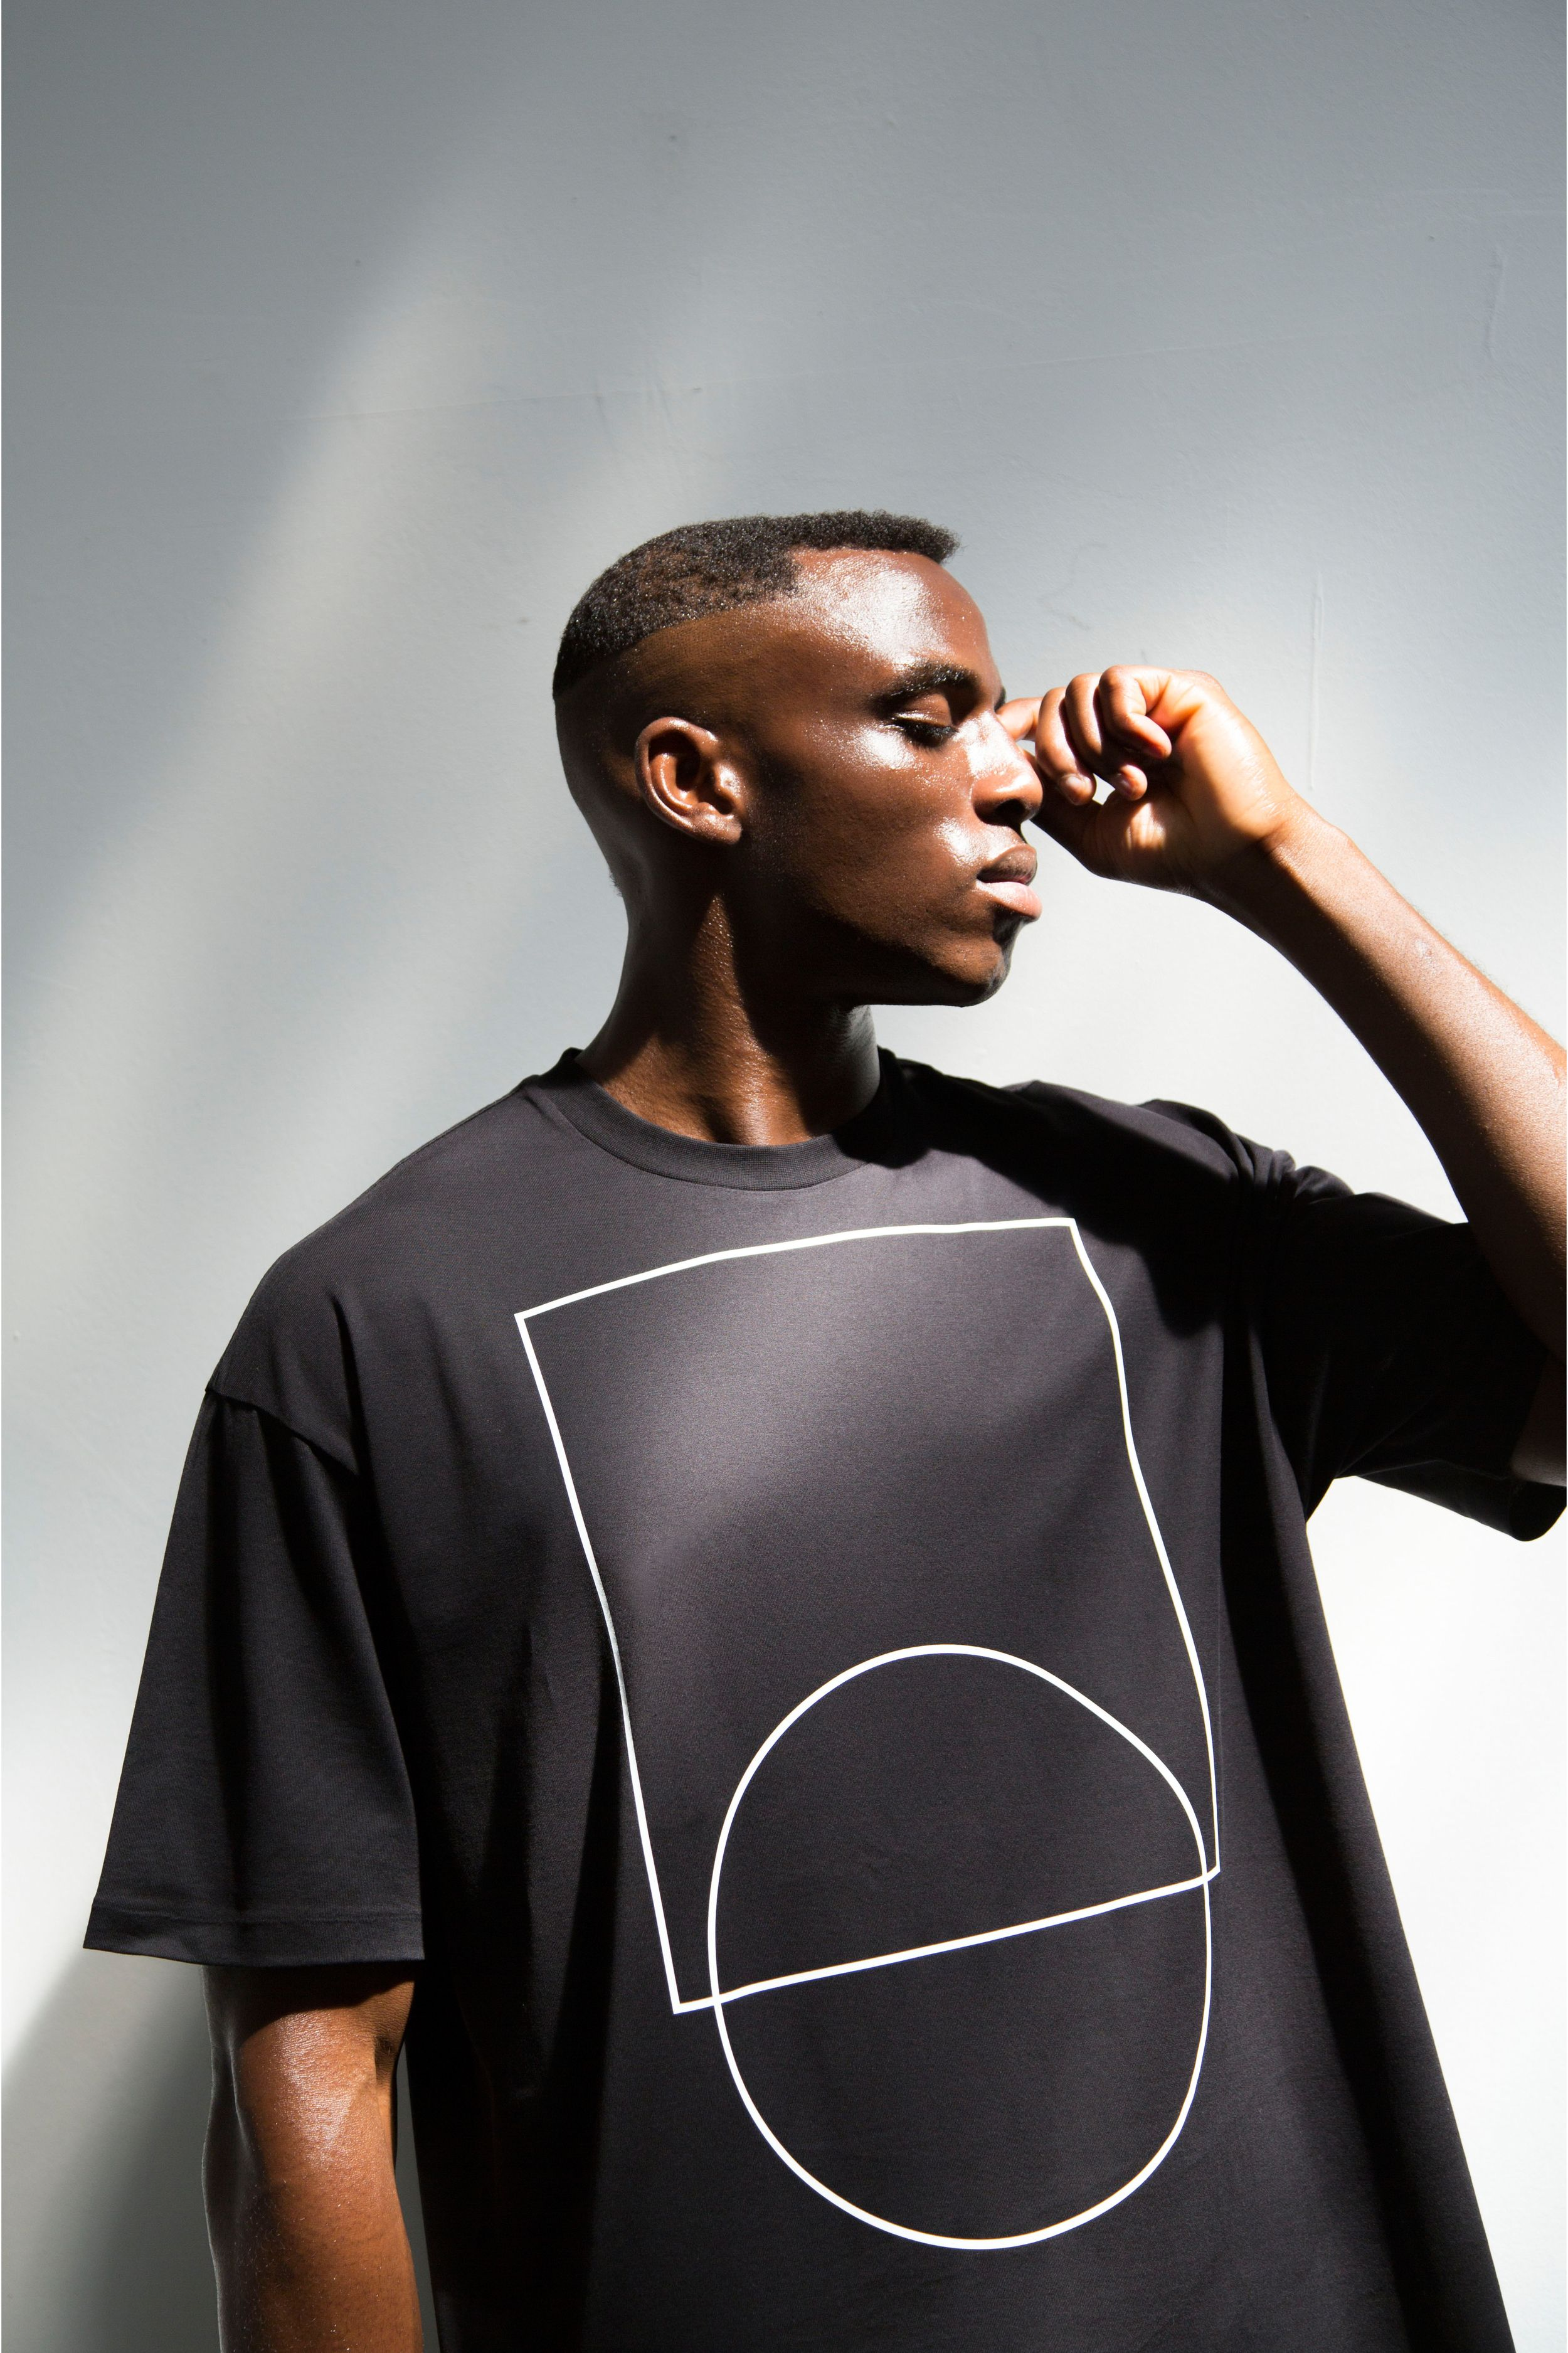 IN THE ZONE oversized Tshirt Black cottonjersey Crew